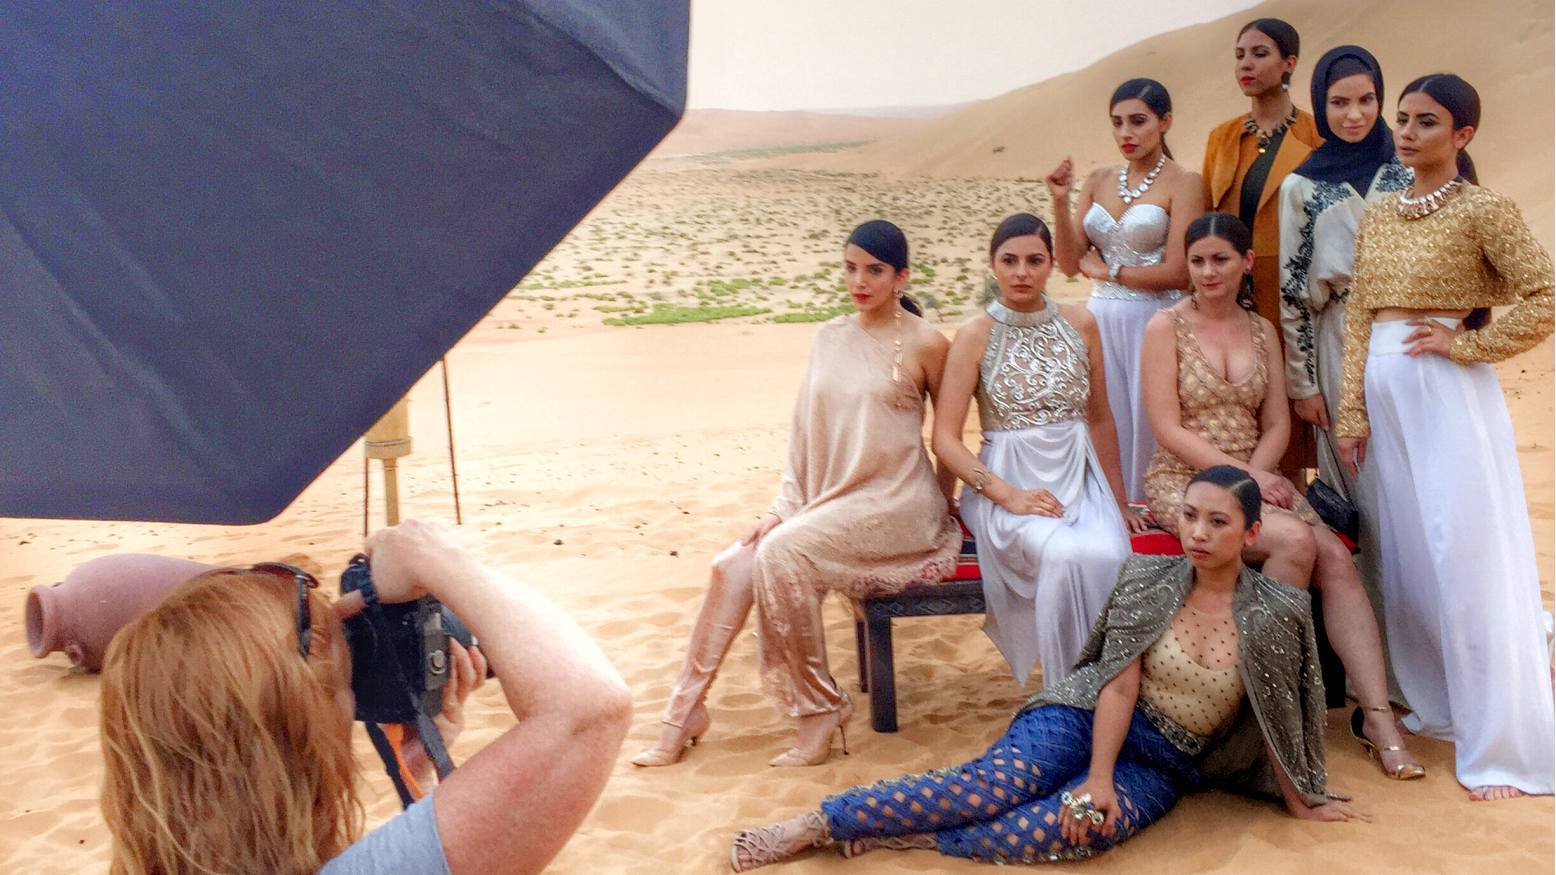 The Neo-Arabia shoot in progress